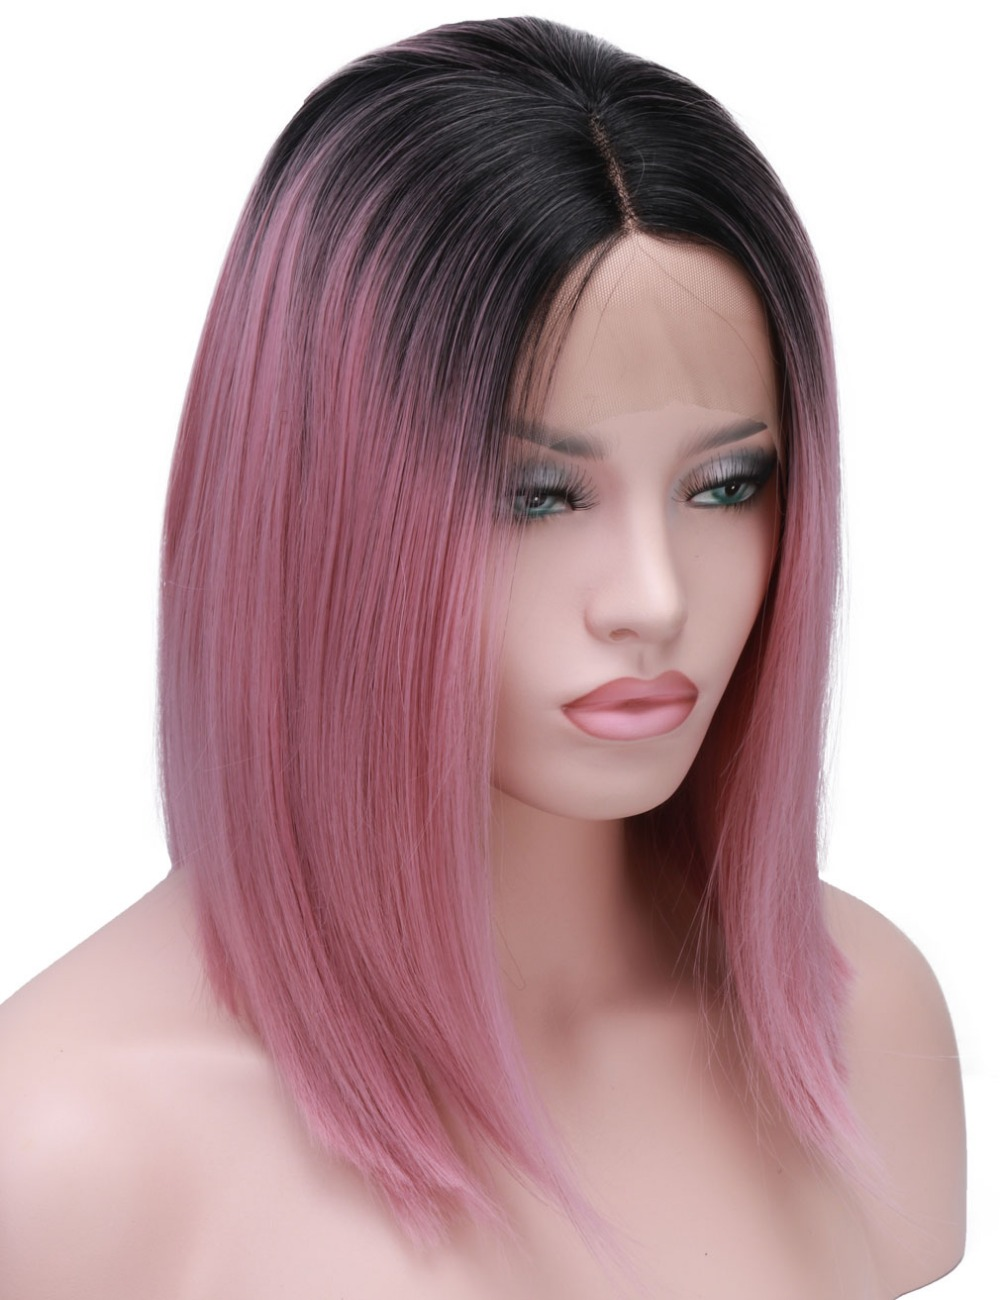 Short Bob Pink Wig 2 Tones Color Silky Straight Synthetic Lace Front